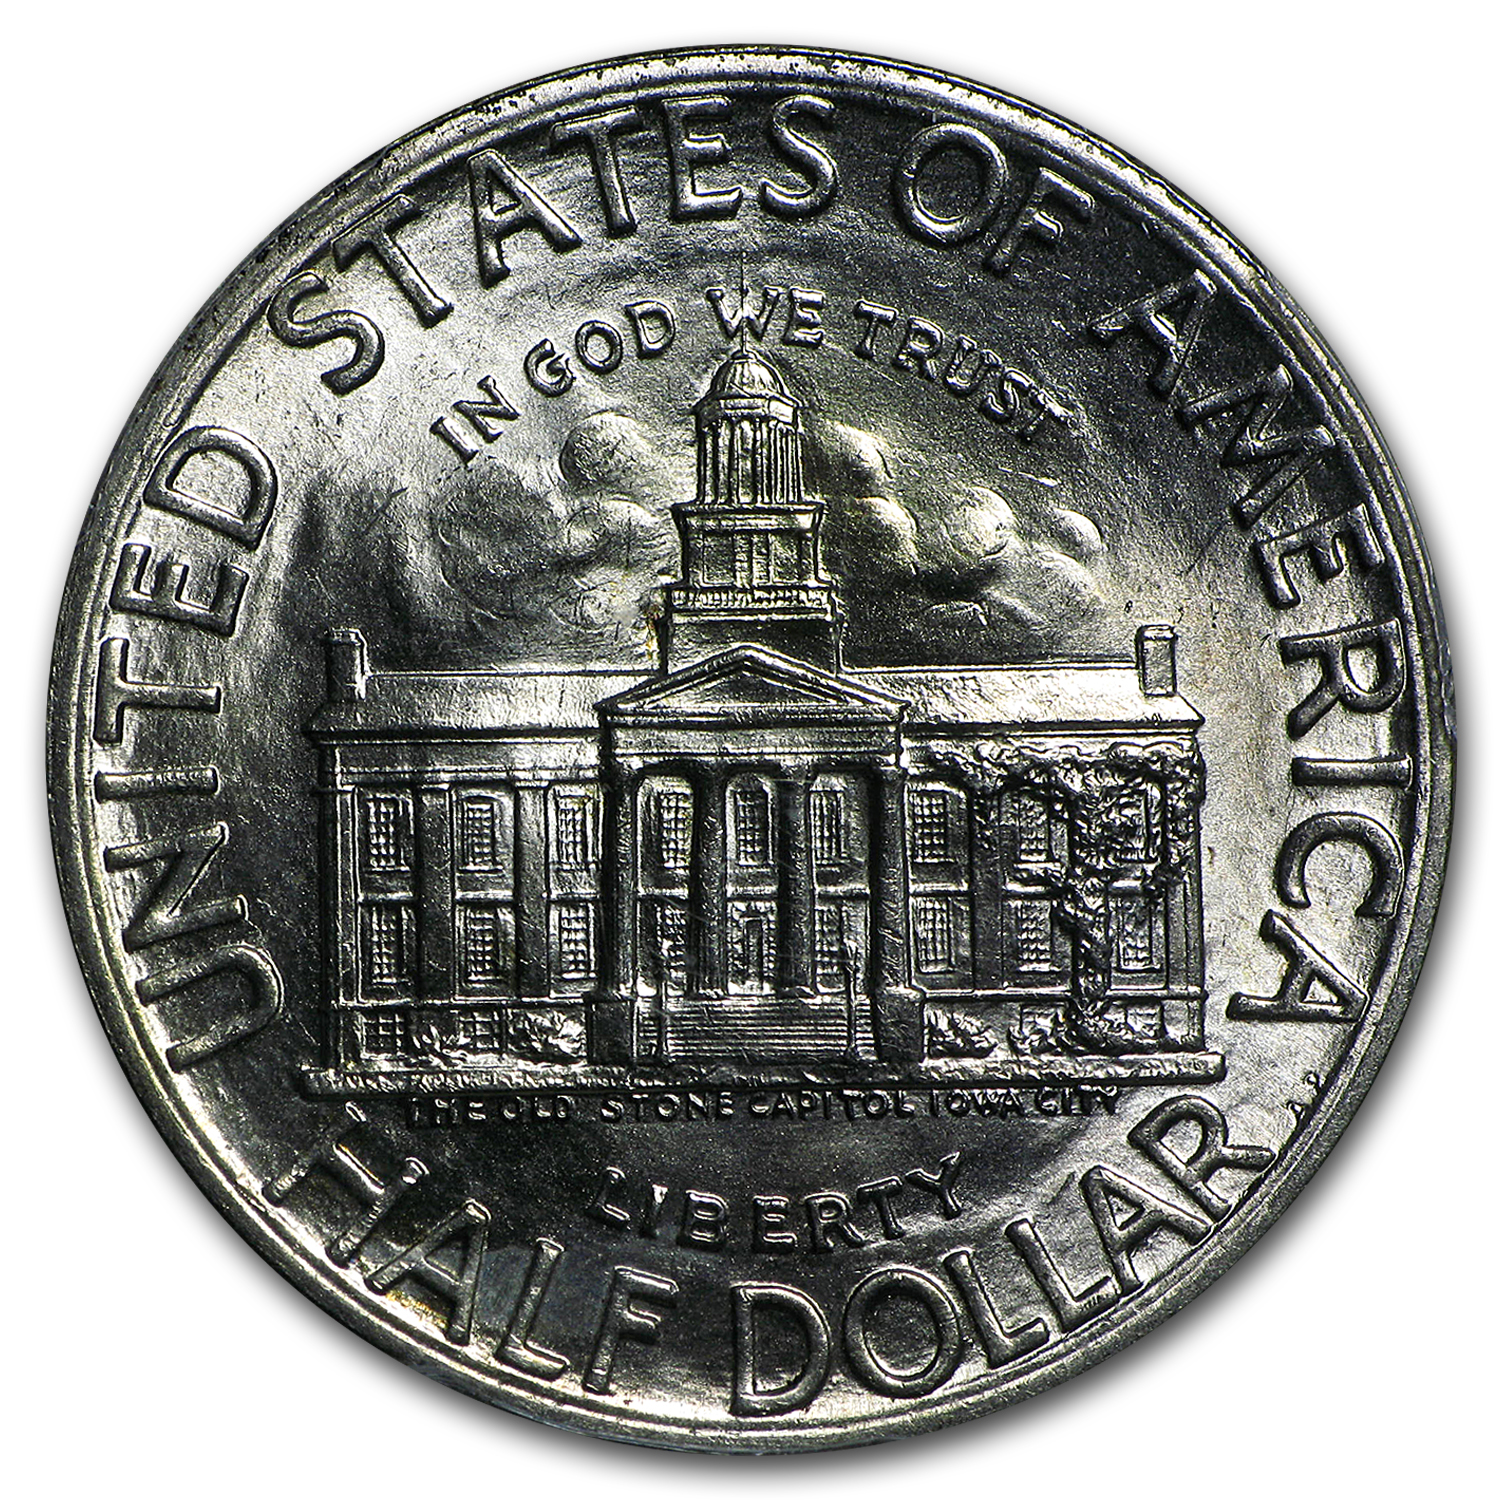 1946 Iowa Centennial MS-65 PCGS Commemorative Half Dollar